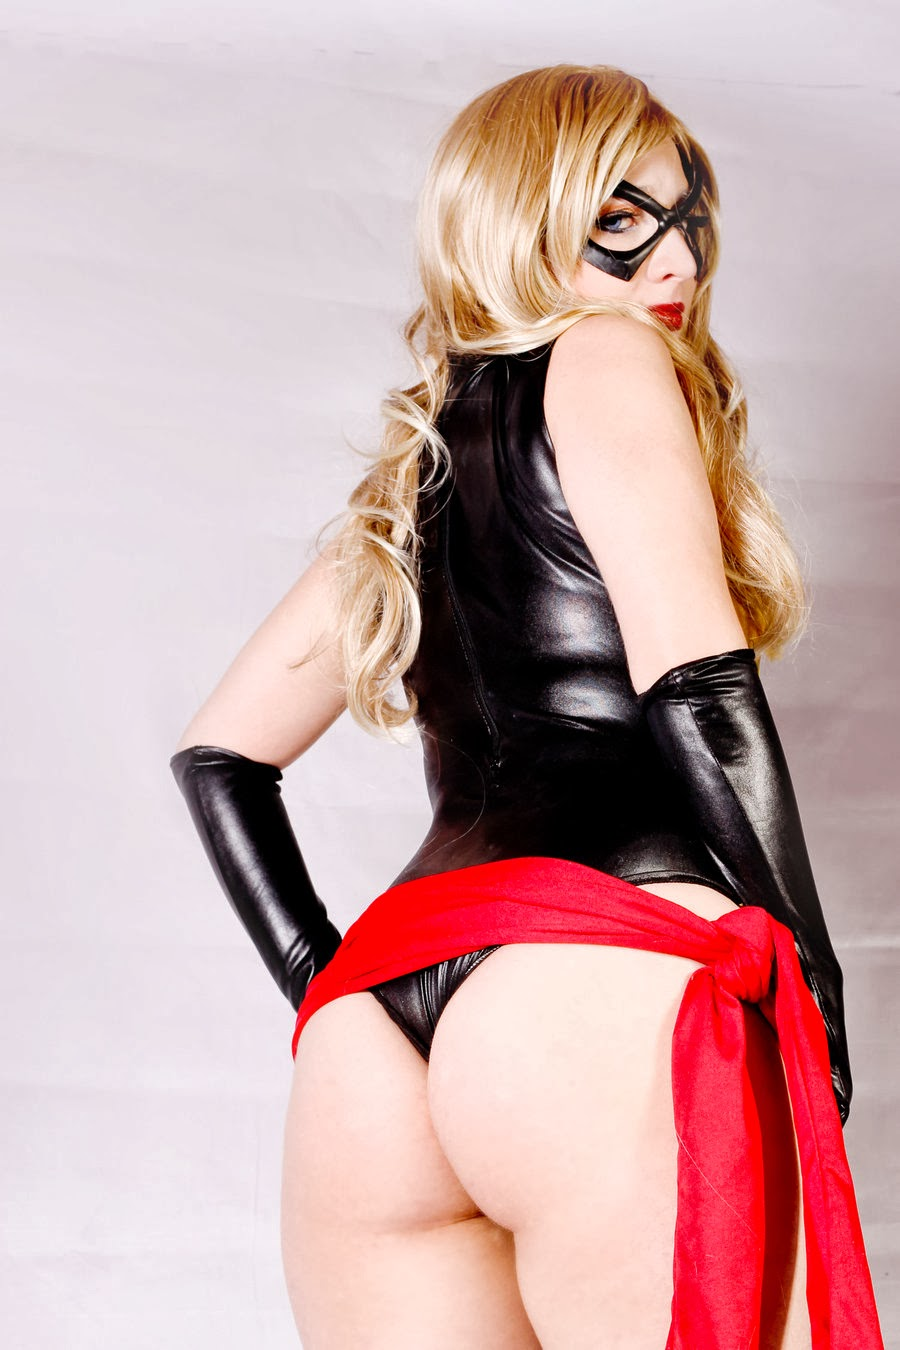 Big Culo Day 2014: Miss Marvel Cosplay